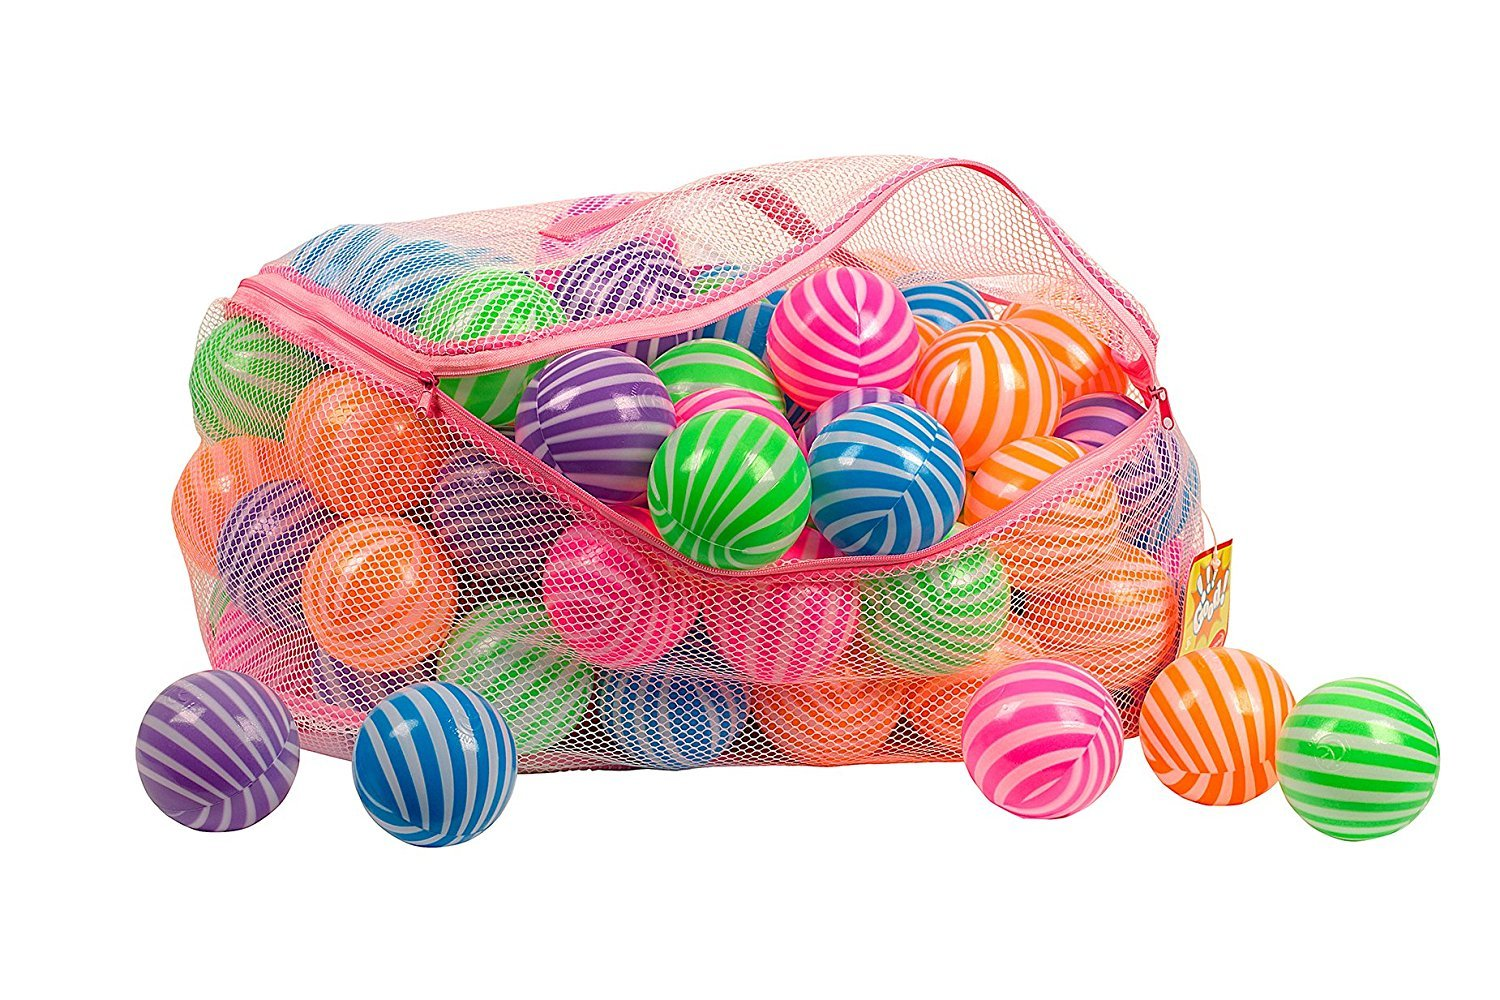 Amazon.com: Toysag Ball Pit 100 Pack STRIPE SHAPE Comes With Storage Bag  With Zipper BPA Free Ball Pit Balls, Crush Proof Pit Balls For Kids And Ball  Pits ...